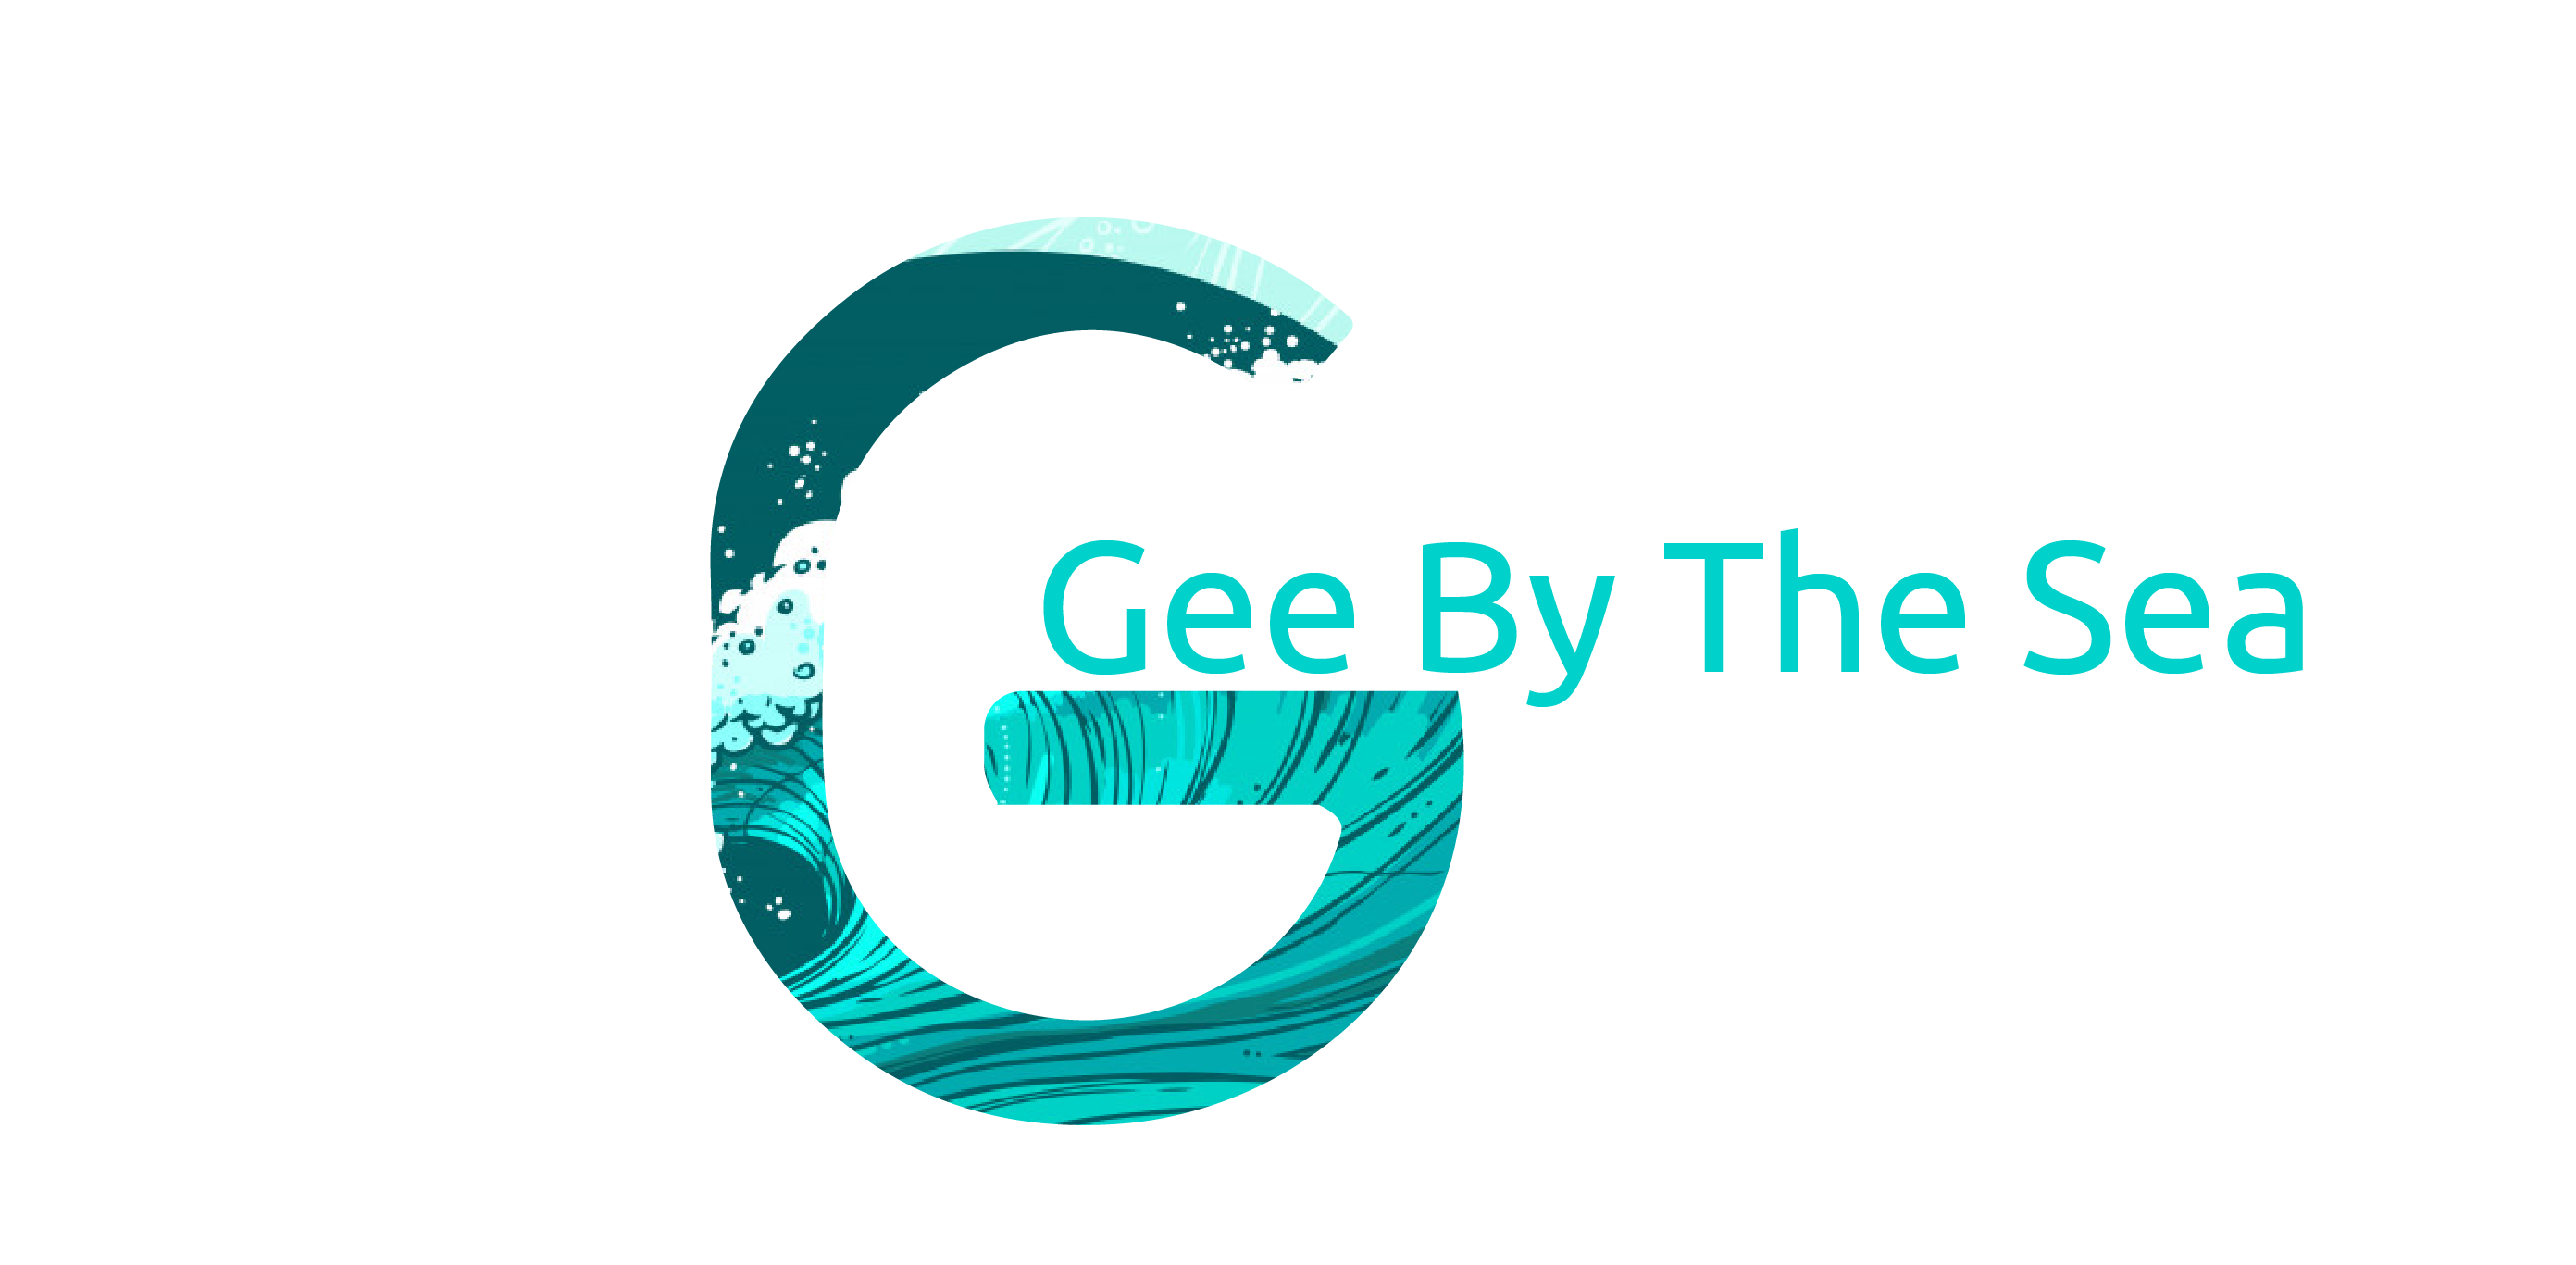 Gee by the Sea